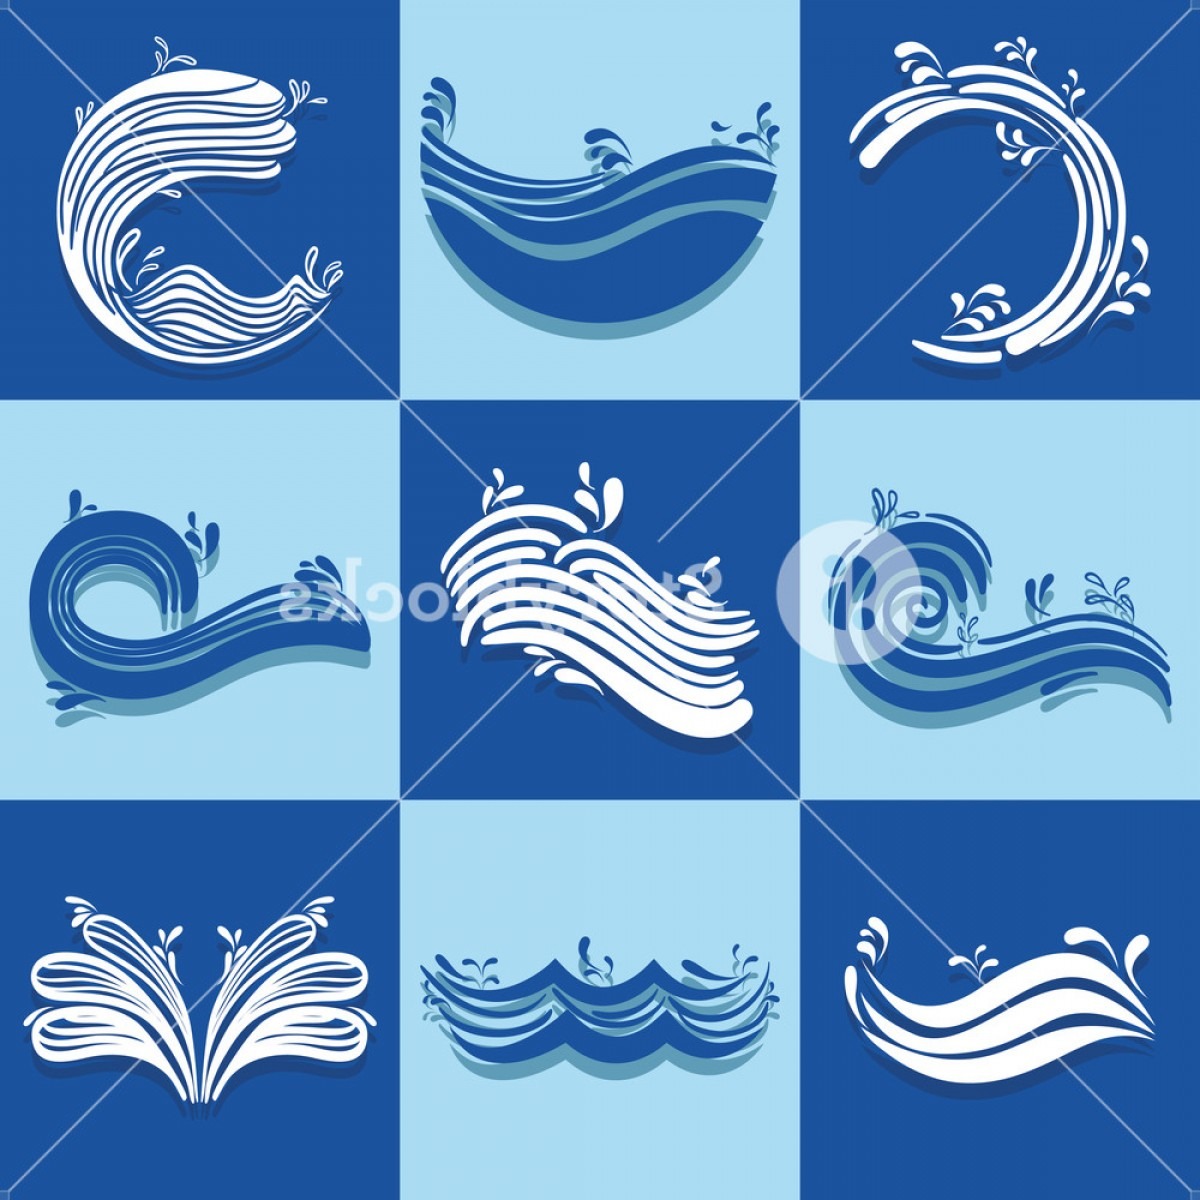 Awesome Ocean Wave Vector: Set Ocean Waves With Differes Shapes Design Vector Illustration Bnmkvosqfjbtsyyn